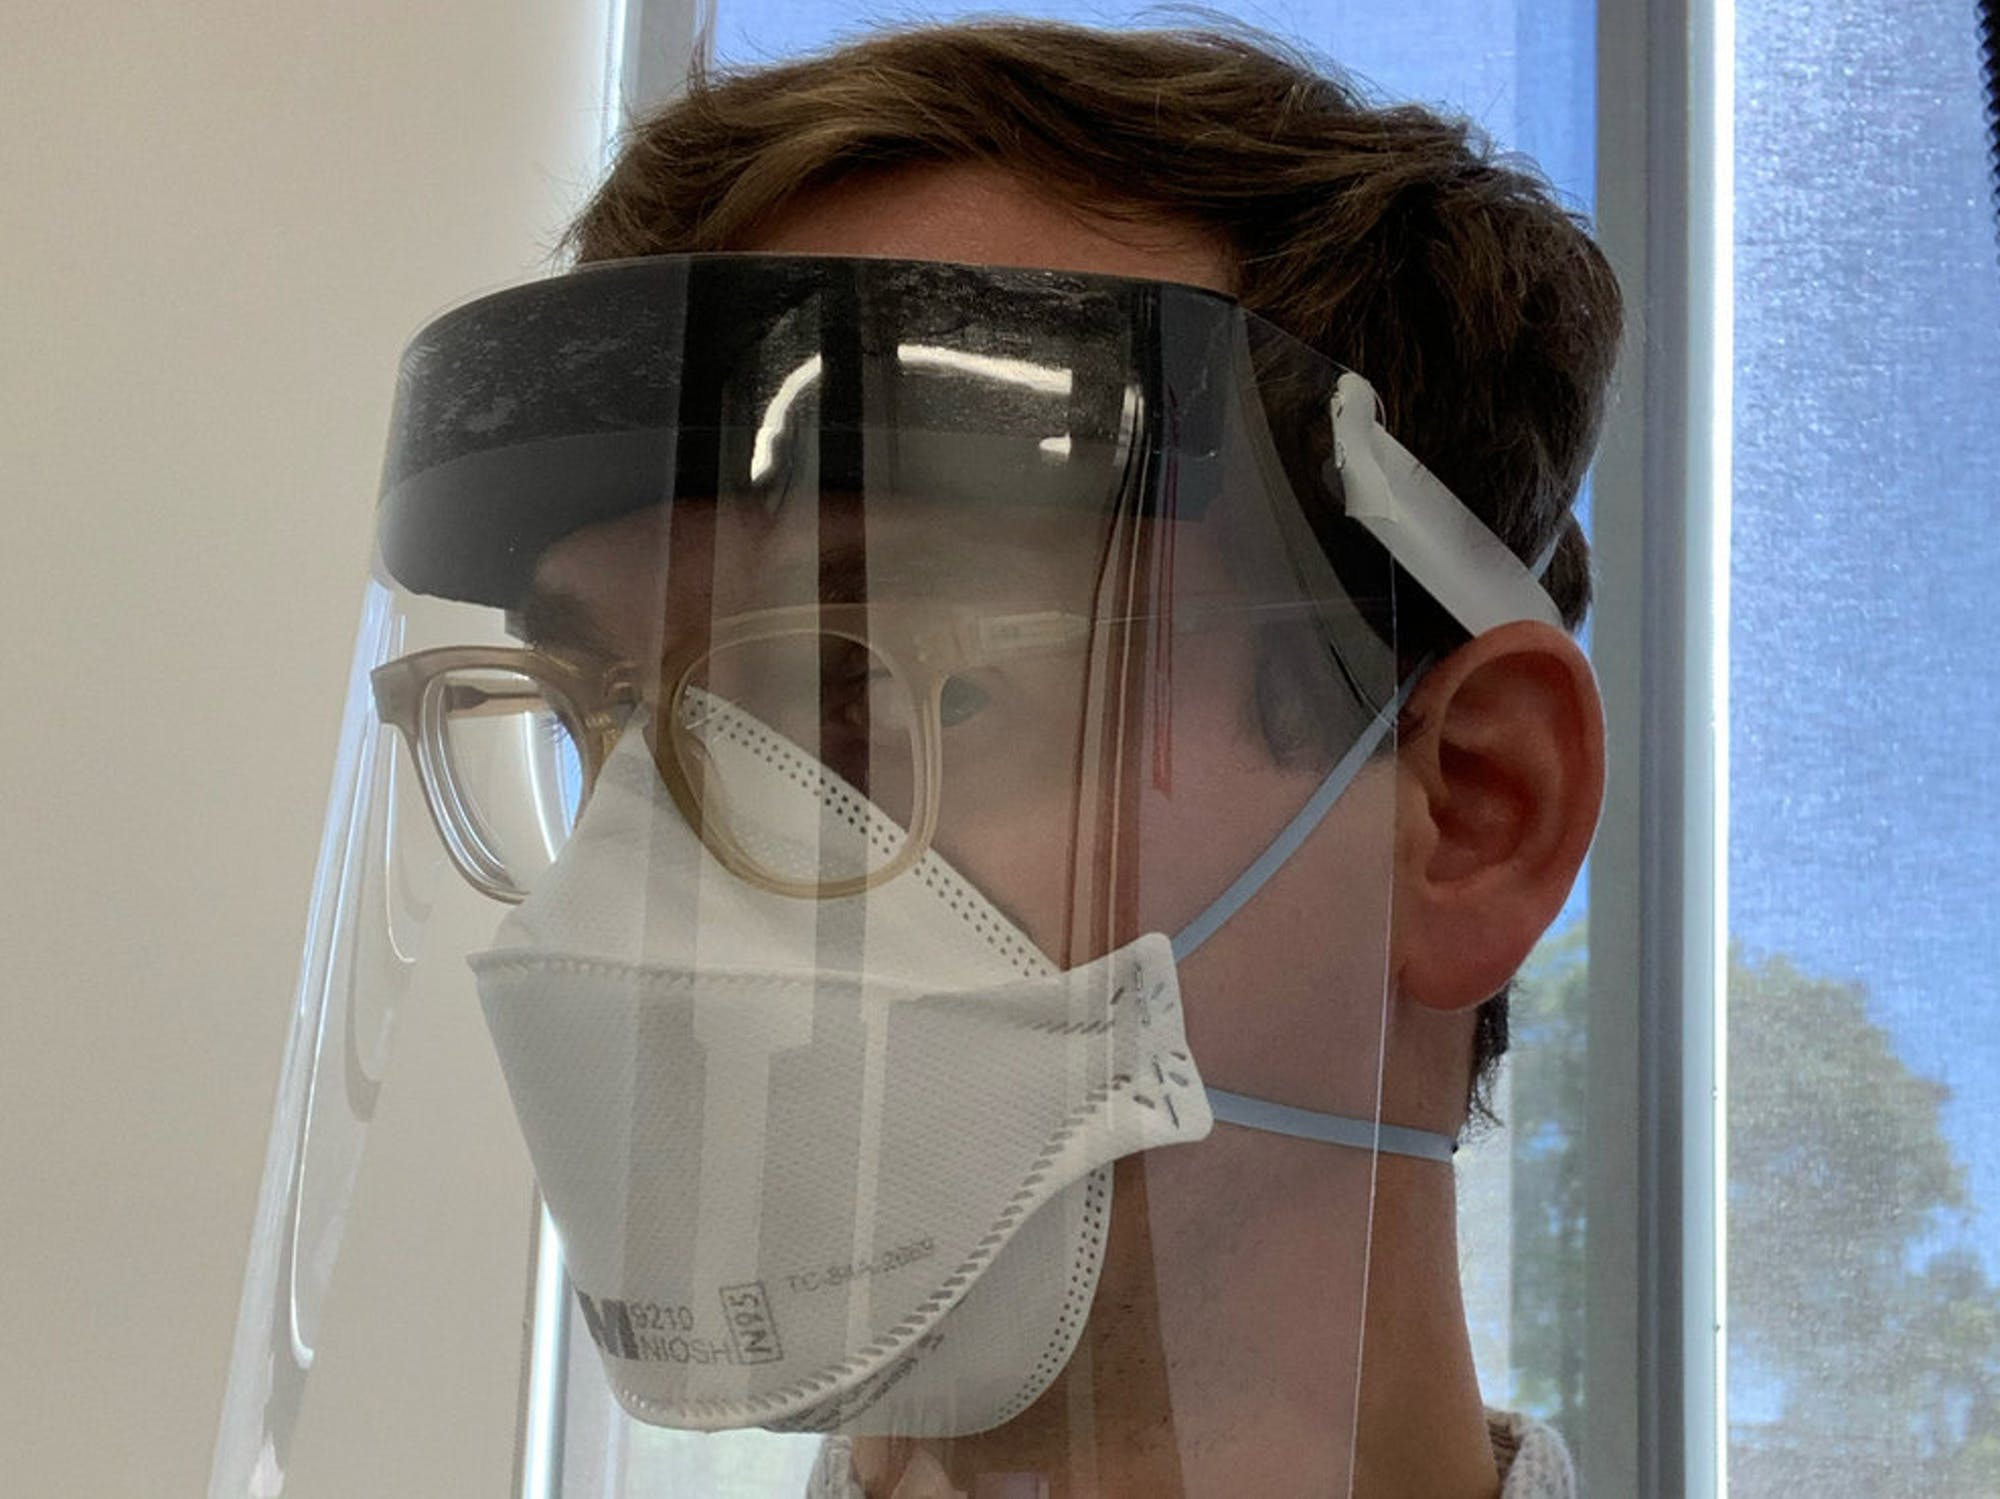 Male wearing face shield, mask, and glasses